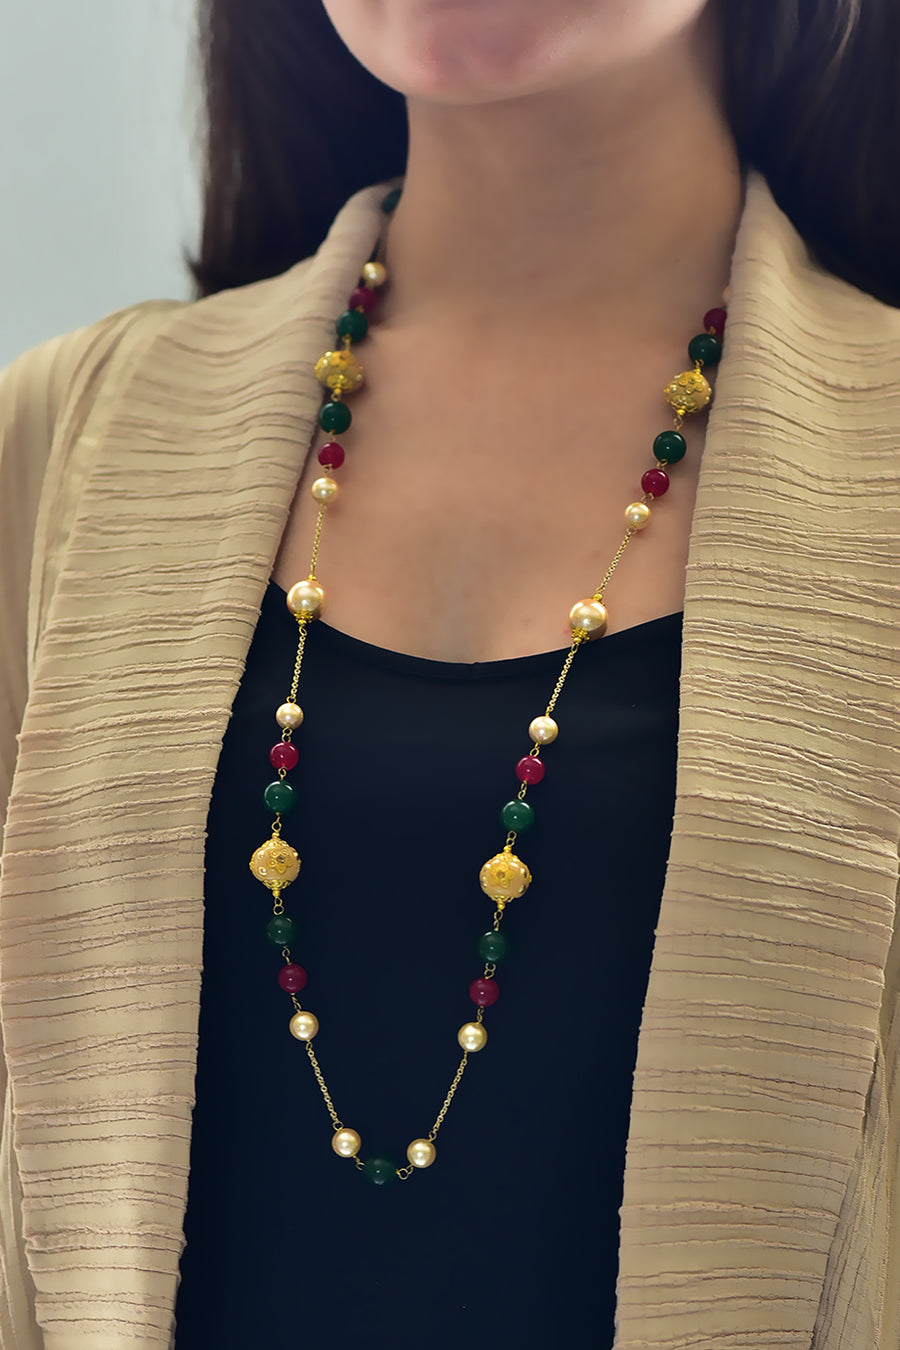 Rana Necklace - Heritage Bead, Pearl & Quartz